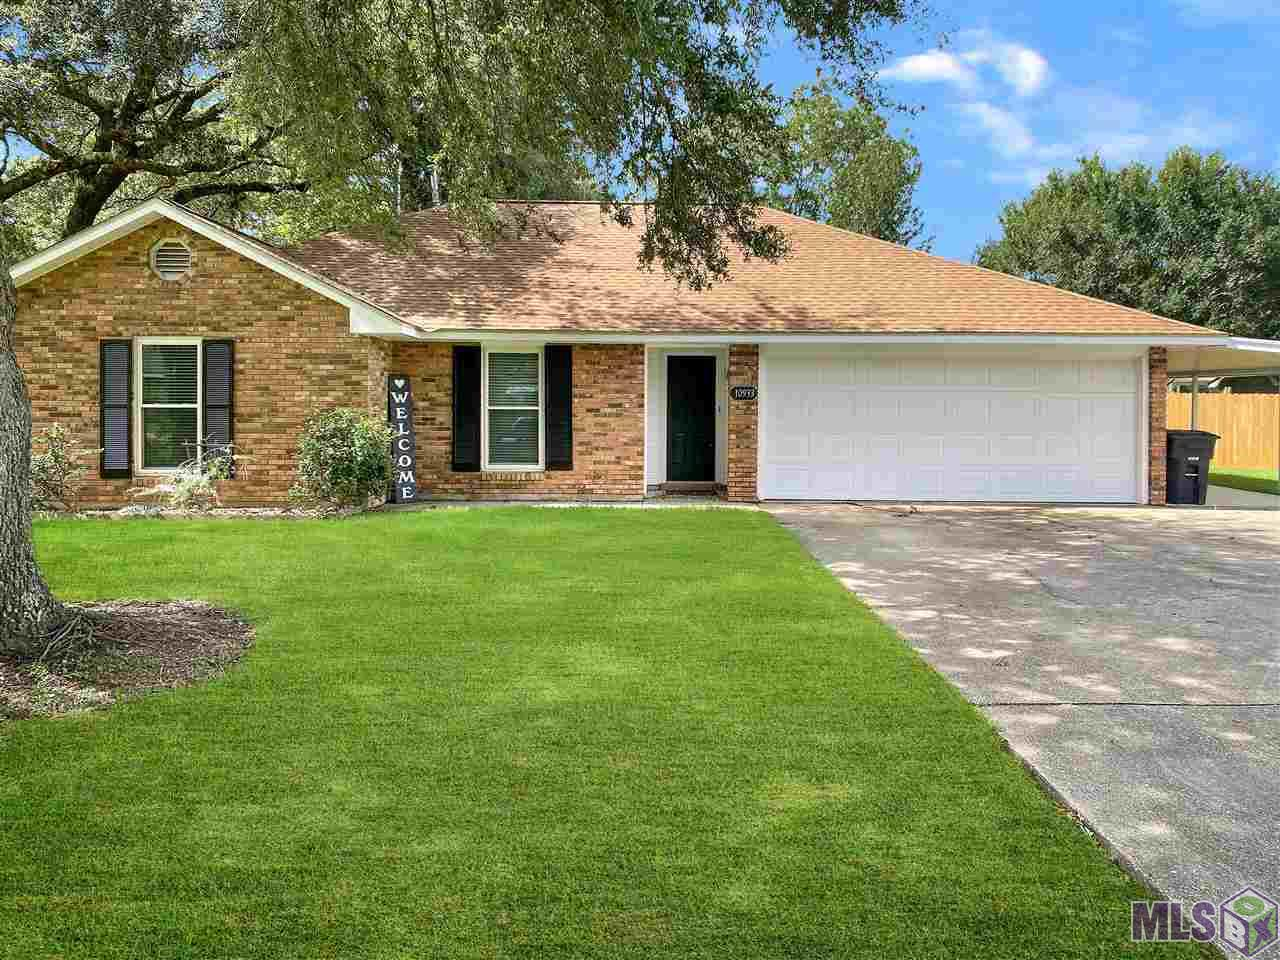 This beautiful home is Now Available for Lease Purchase (Rent-to-Own) with an 8-10% option fee due at execution of the lease. Newly renovated with Granite Countertops, Stainless Appliances, and fresh new flooring throughout.